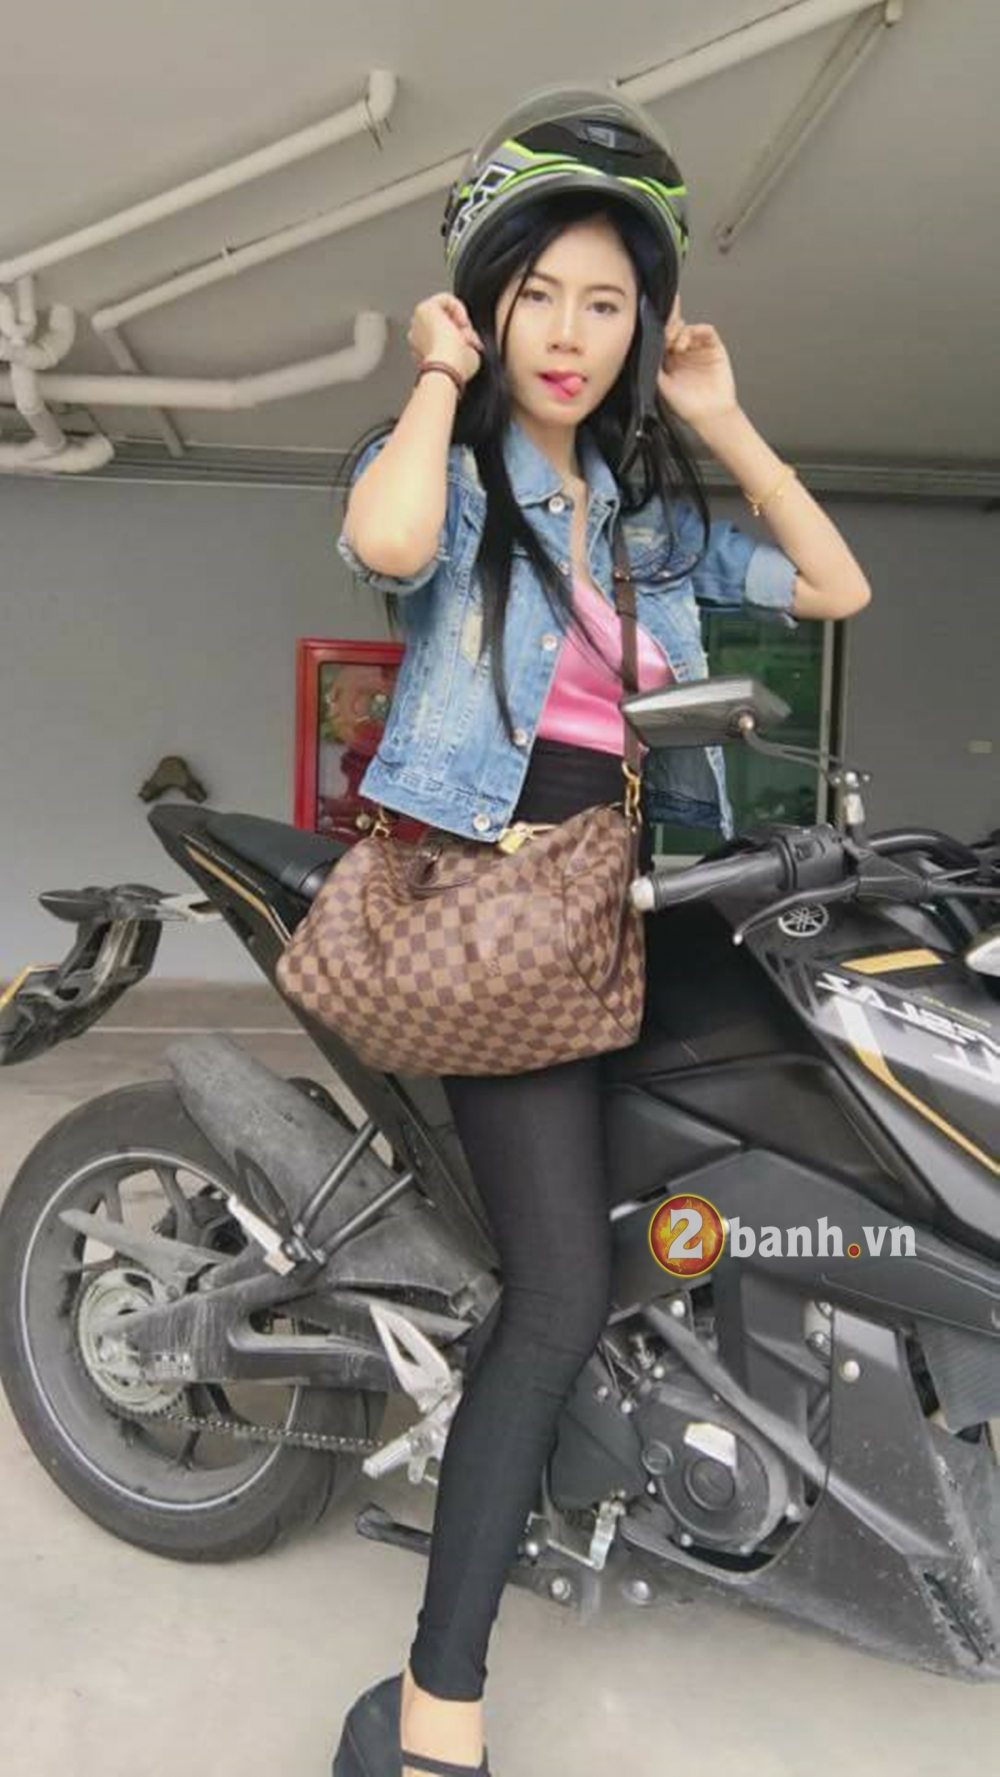 Me man cung Hot Girl Thai do dang cung Yamaha MSlaz - 3